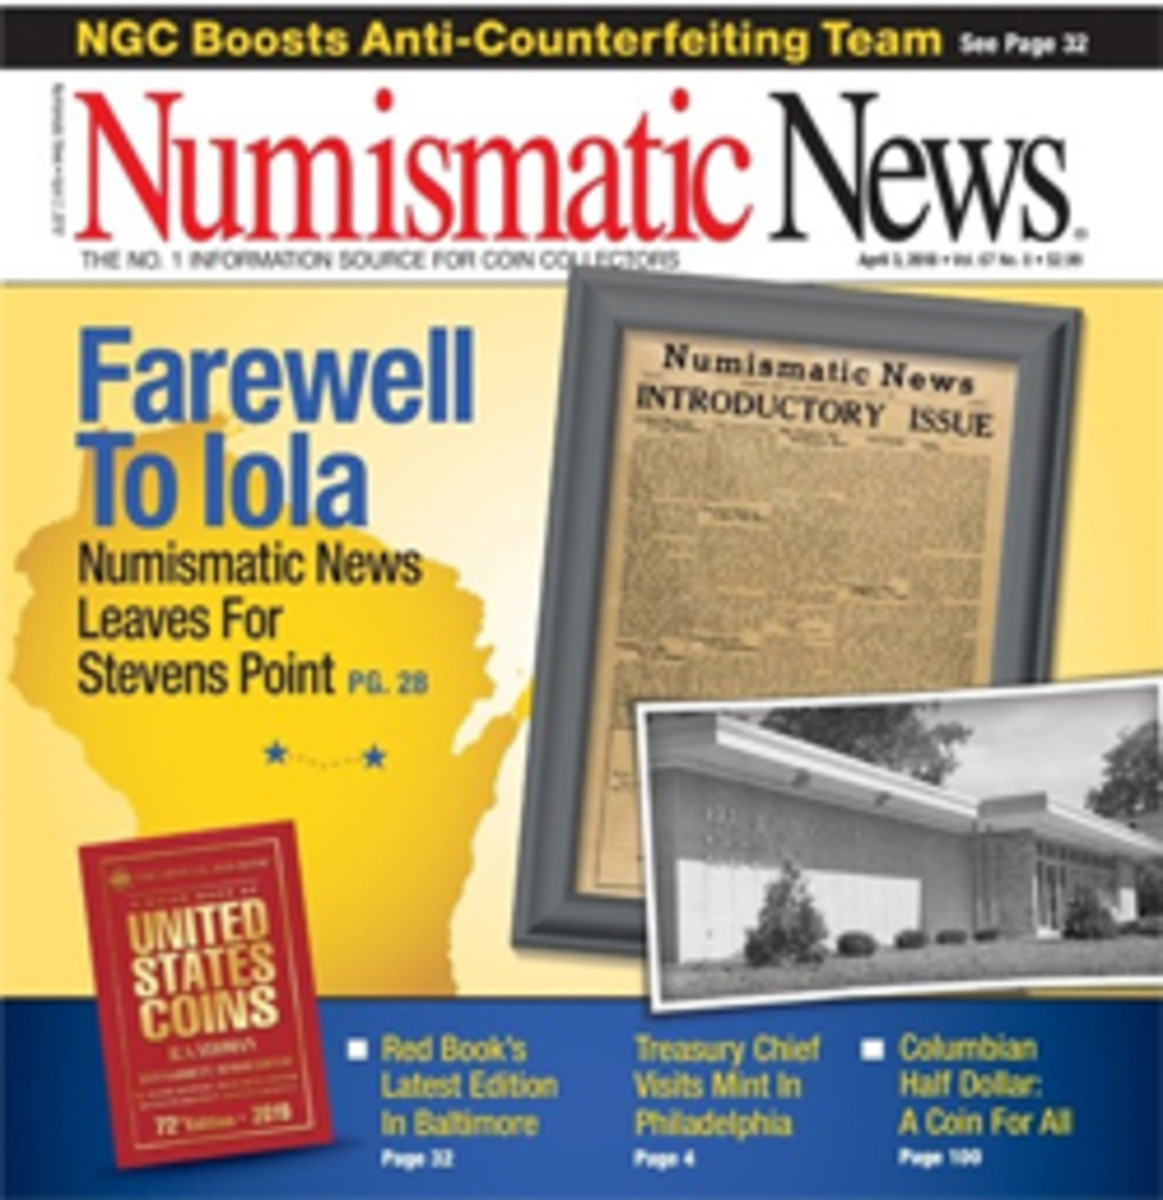 The April 3 issue of 'Numismatic News' announced the move of the publication's editorial offices from Iola, Wis., to nearby Stevens Point.